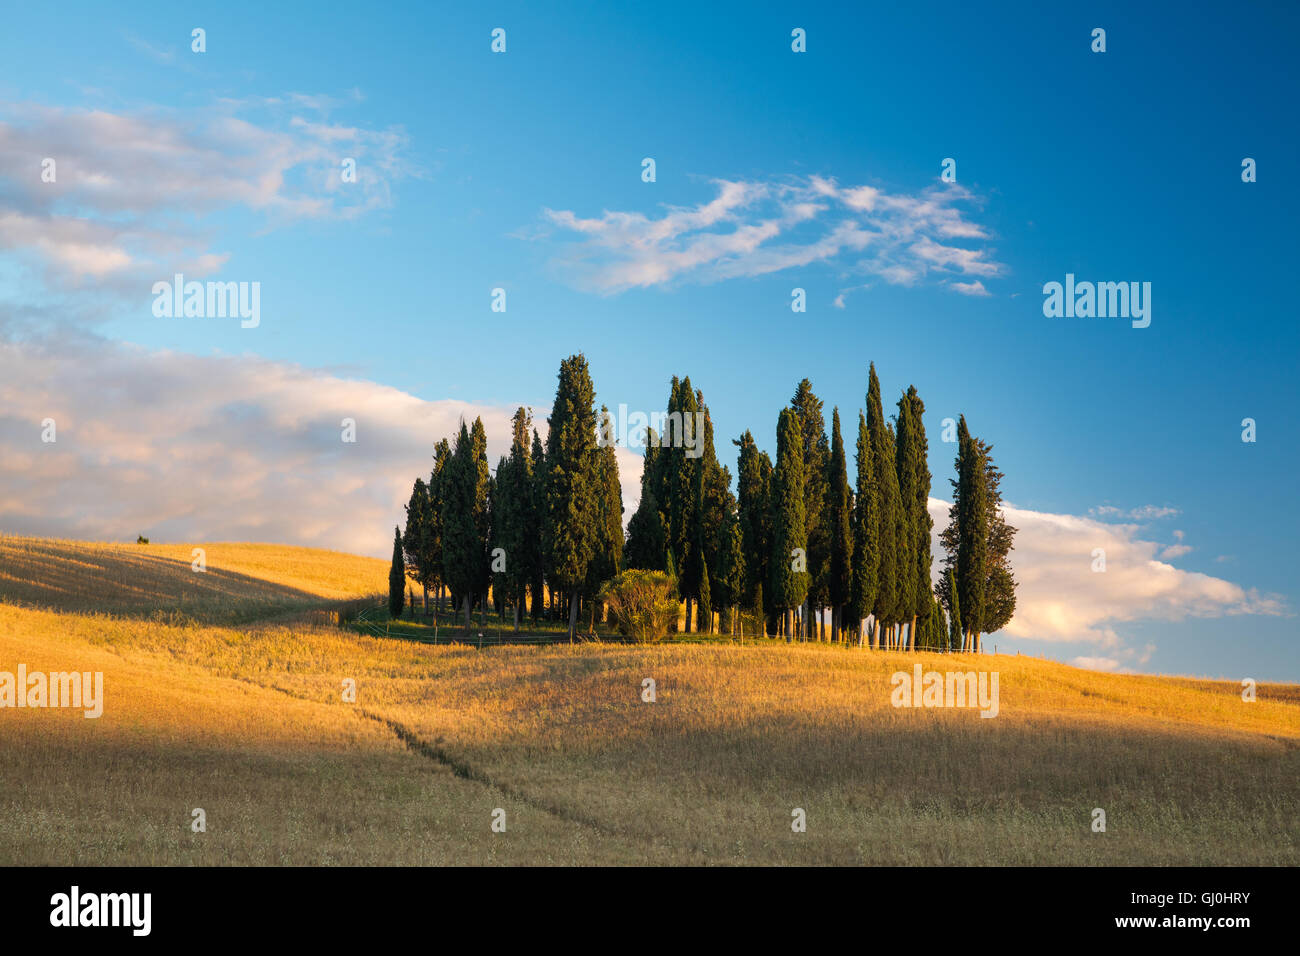 a copse of cyprus trees nr San Quirico d'Orcia, Tuscany - Stock Image